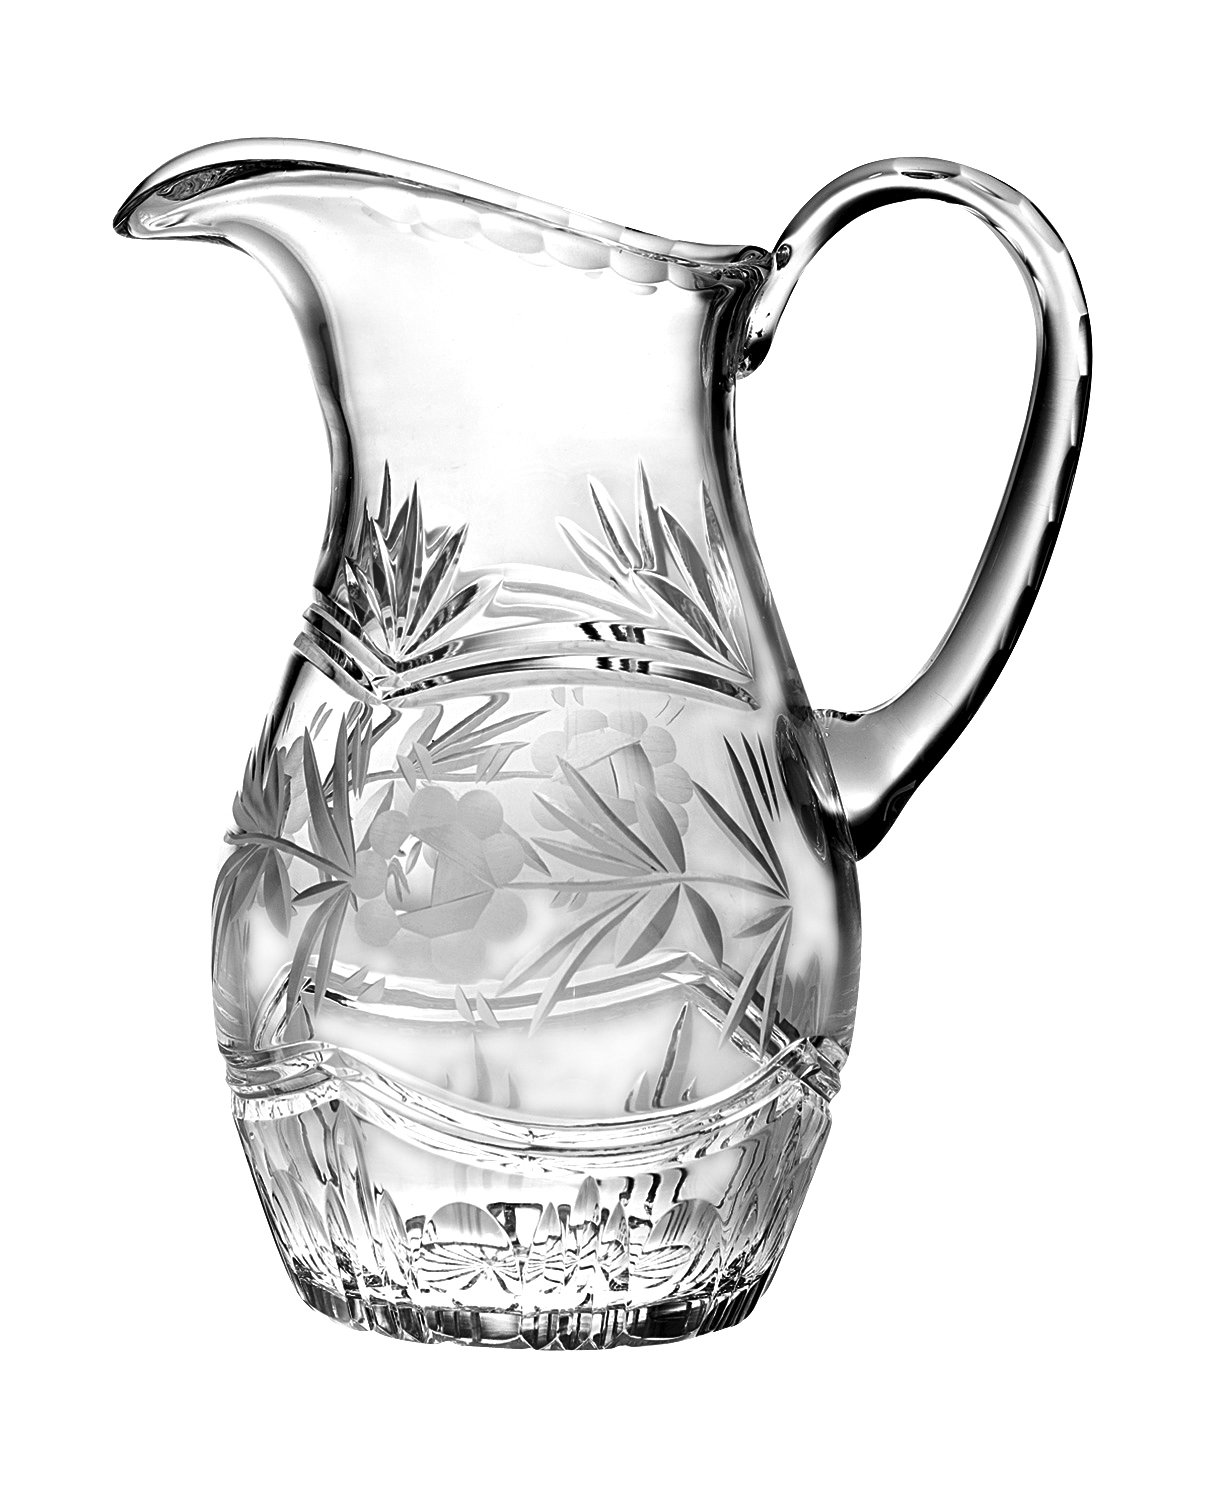 Barski - Hand Cut - Mouth Blown - Crystal Pitcher - with Handle - With Rose Design - 54 oz. - Made in Europe